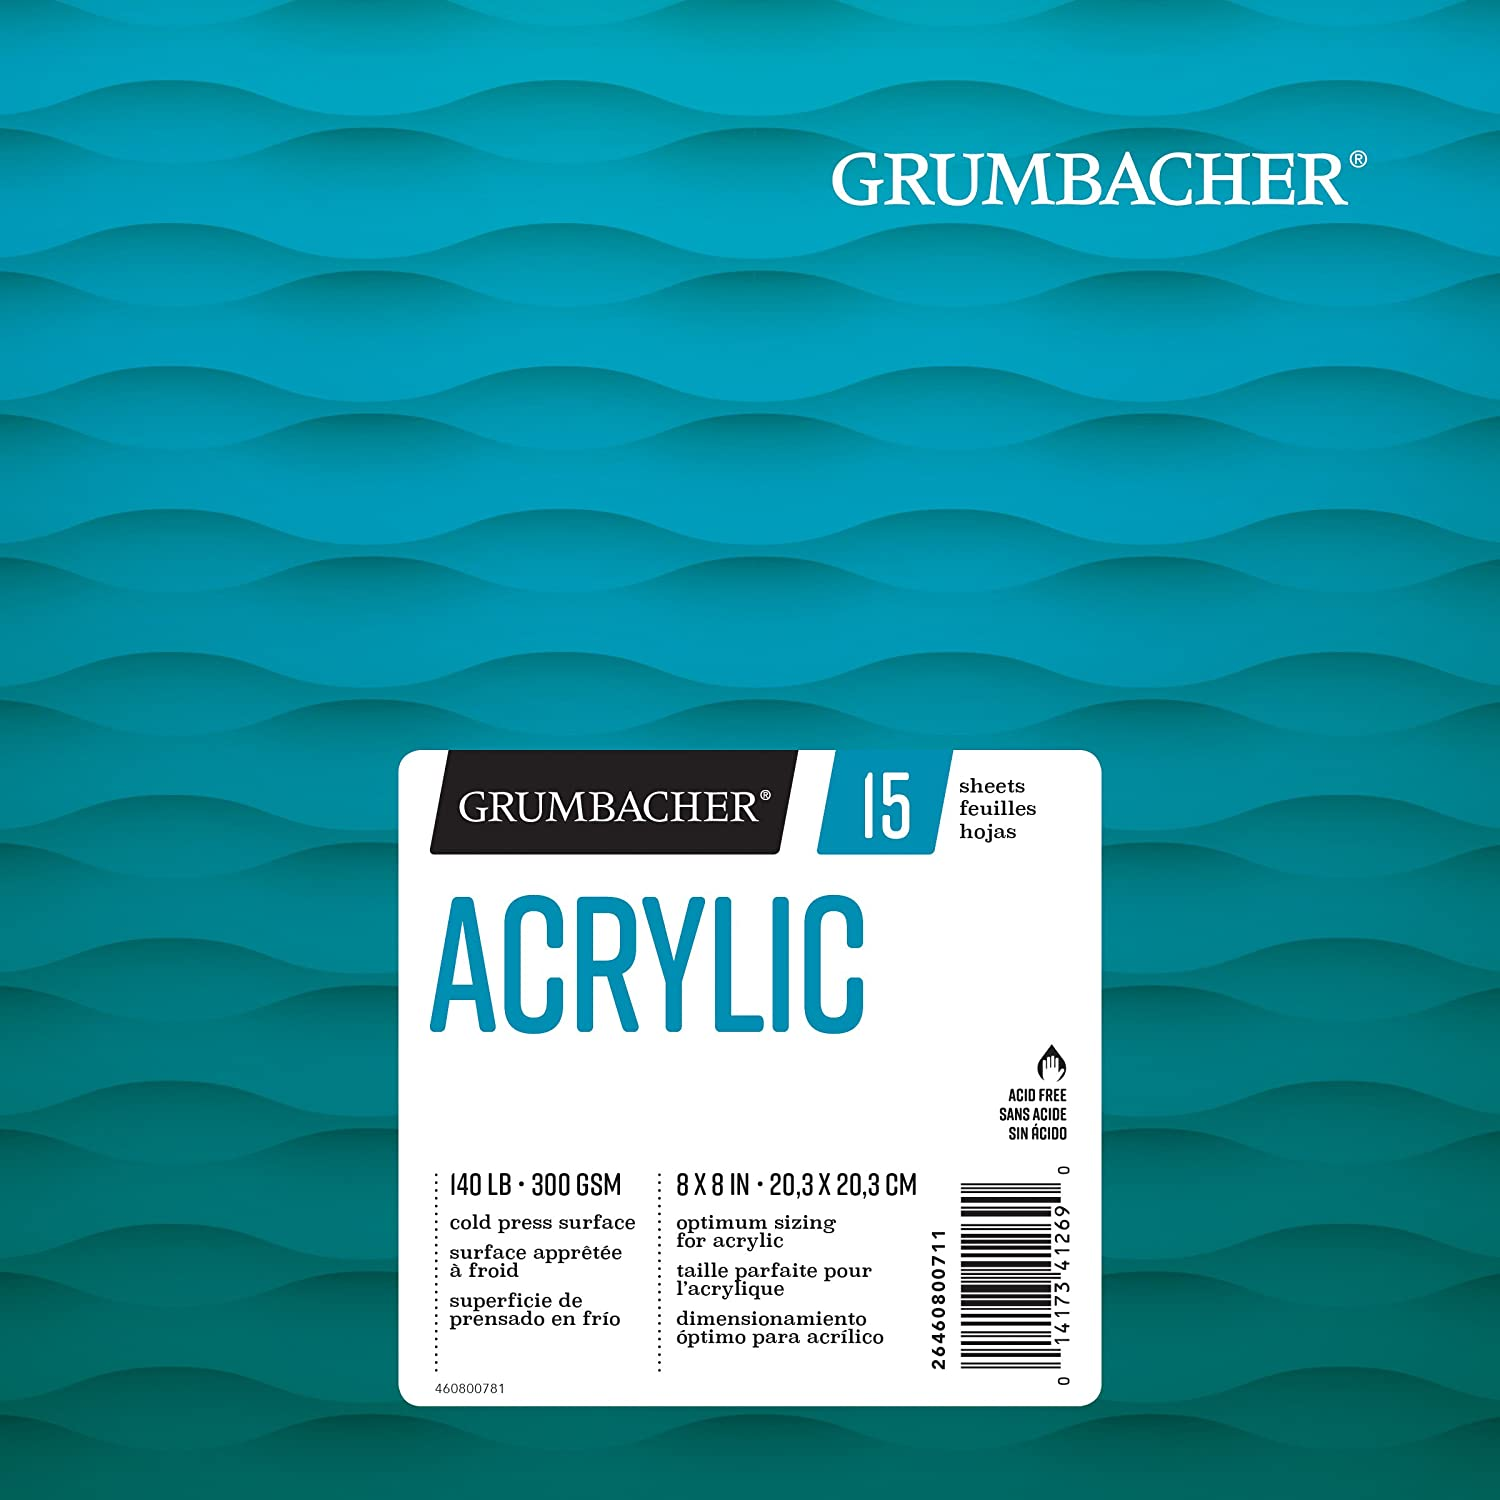 Grumbacher Acrylic Paper Pad with In & Out Pages, 140 lb. / 300 GSM, 9 x 12 inches, Side Wired, 15 White Sheets/Pad, 1 Each, 26460801013 Chartpak Inc.